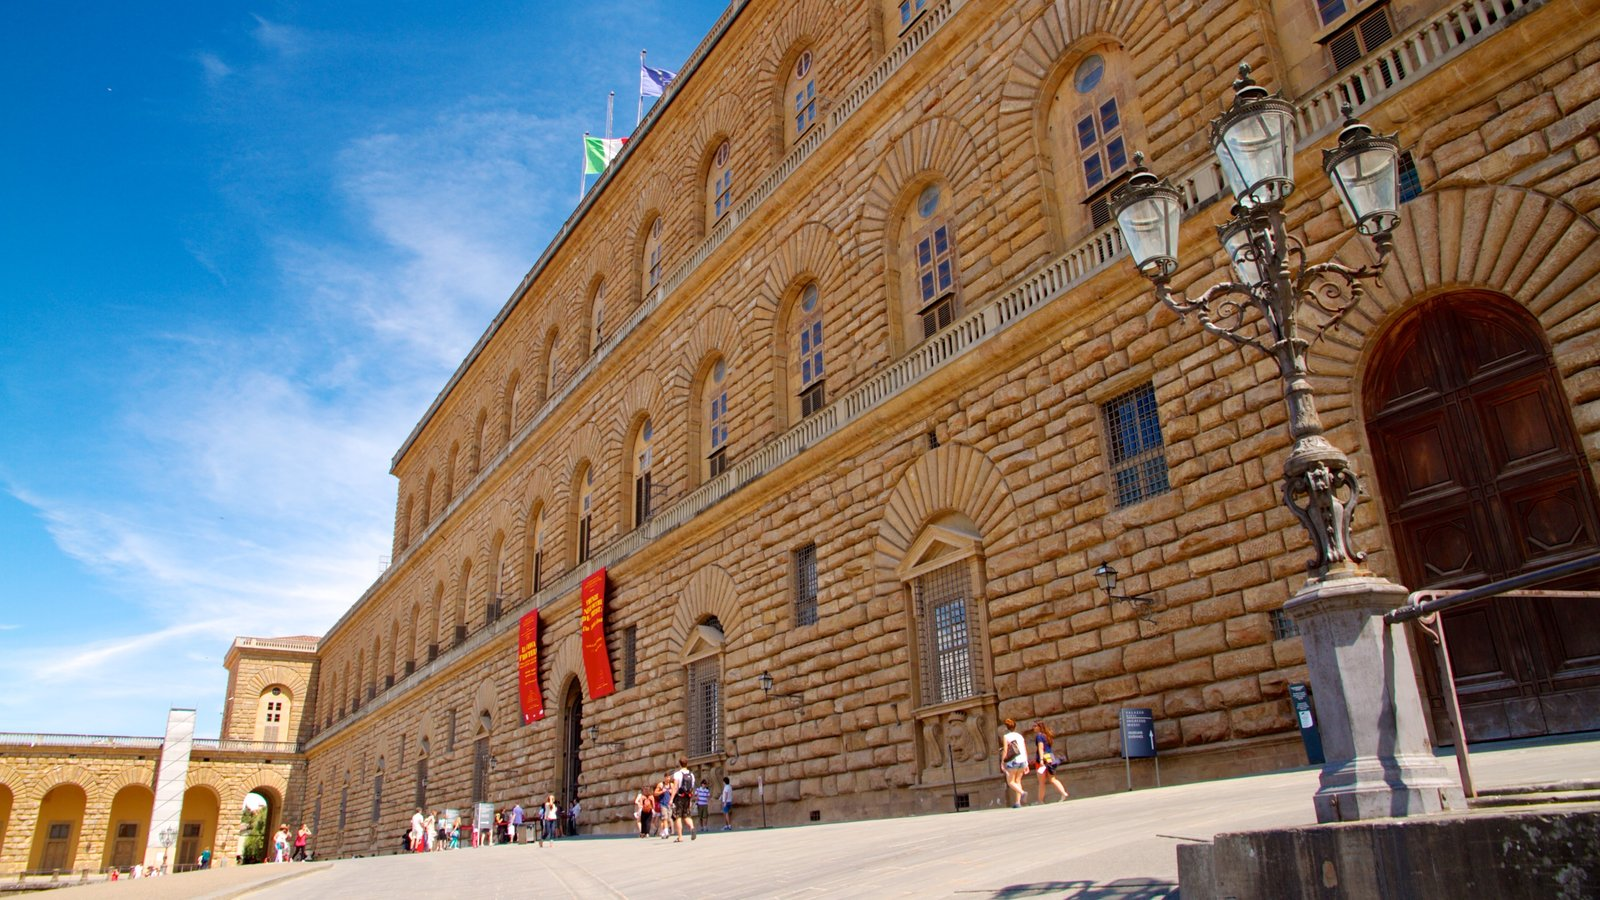 Pitti Palace which includes a square or plaza, heritage architecture and street scenes